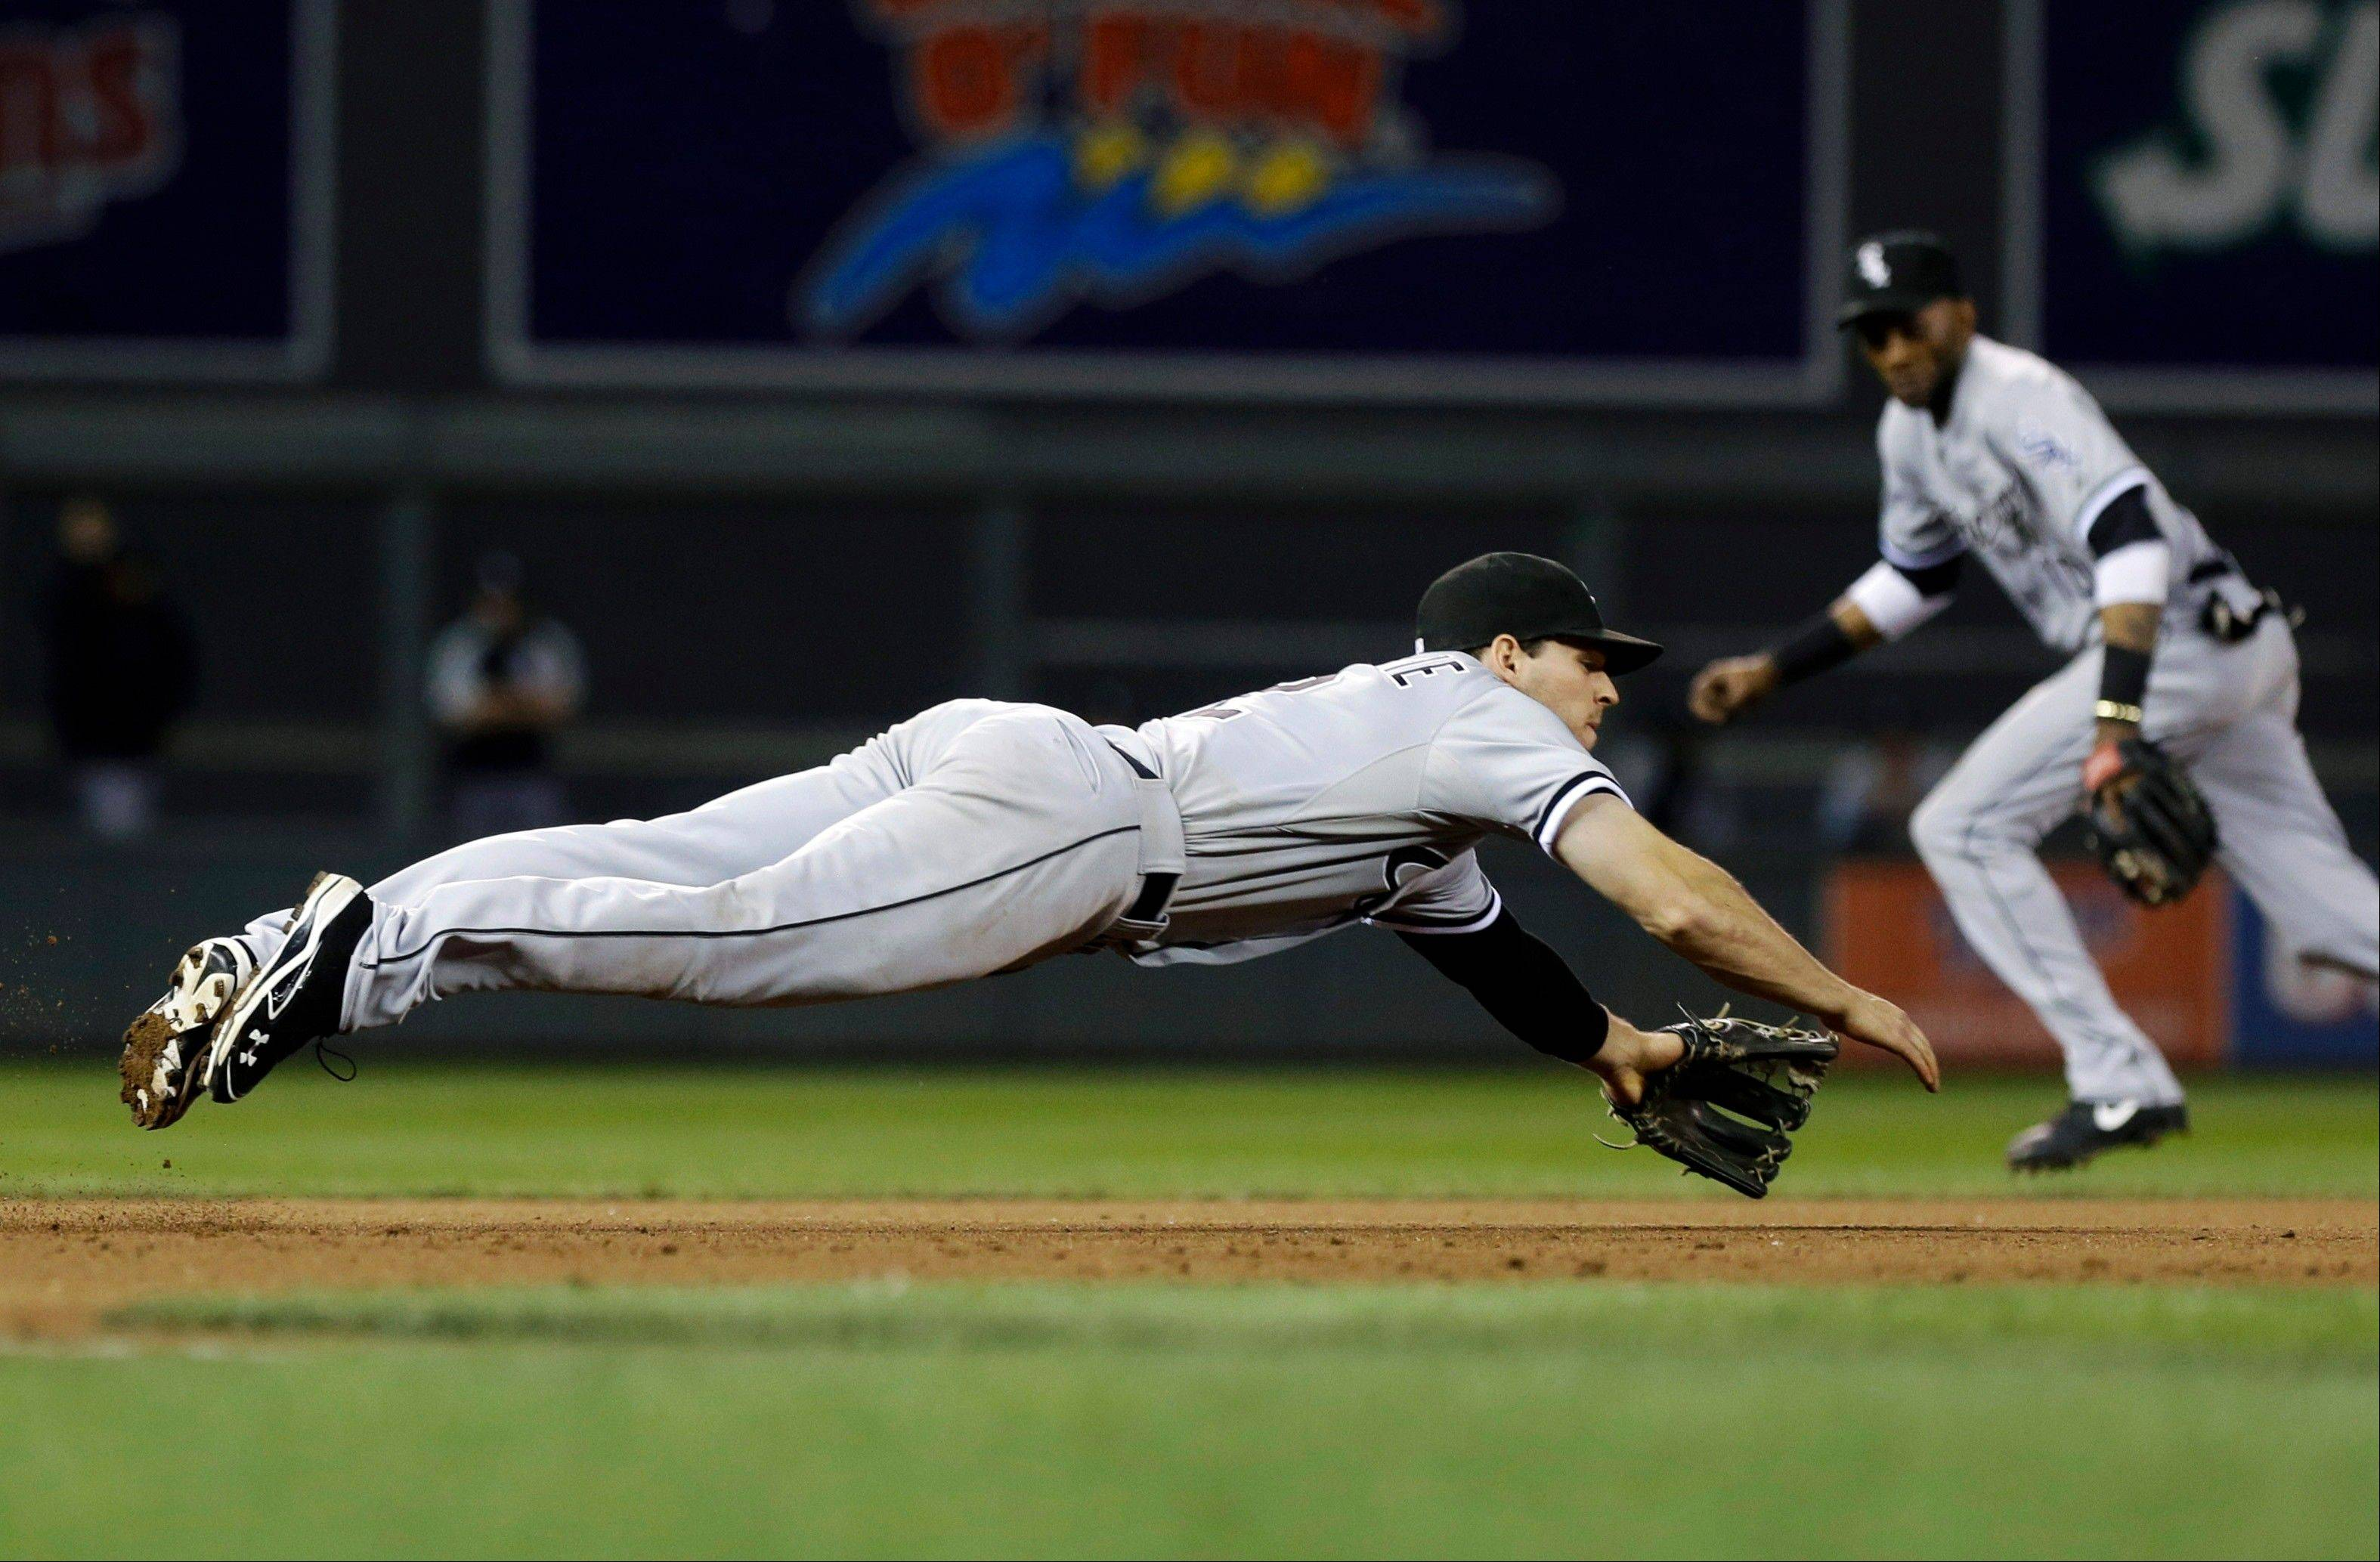 White Sox� Conor Gillaspie makes a futile dive for a sharp grounder off the bat of Minnesota Twins Ryan Doumit for a hit in the seventh inning of a baseball game Tuesday, June 18, 2013 in Minneapolis. The Twins won 7-5. (AP Photo/Jim Mone)